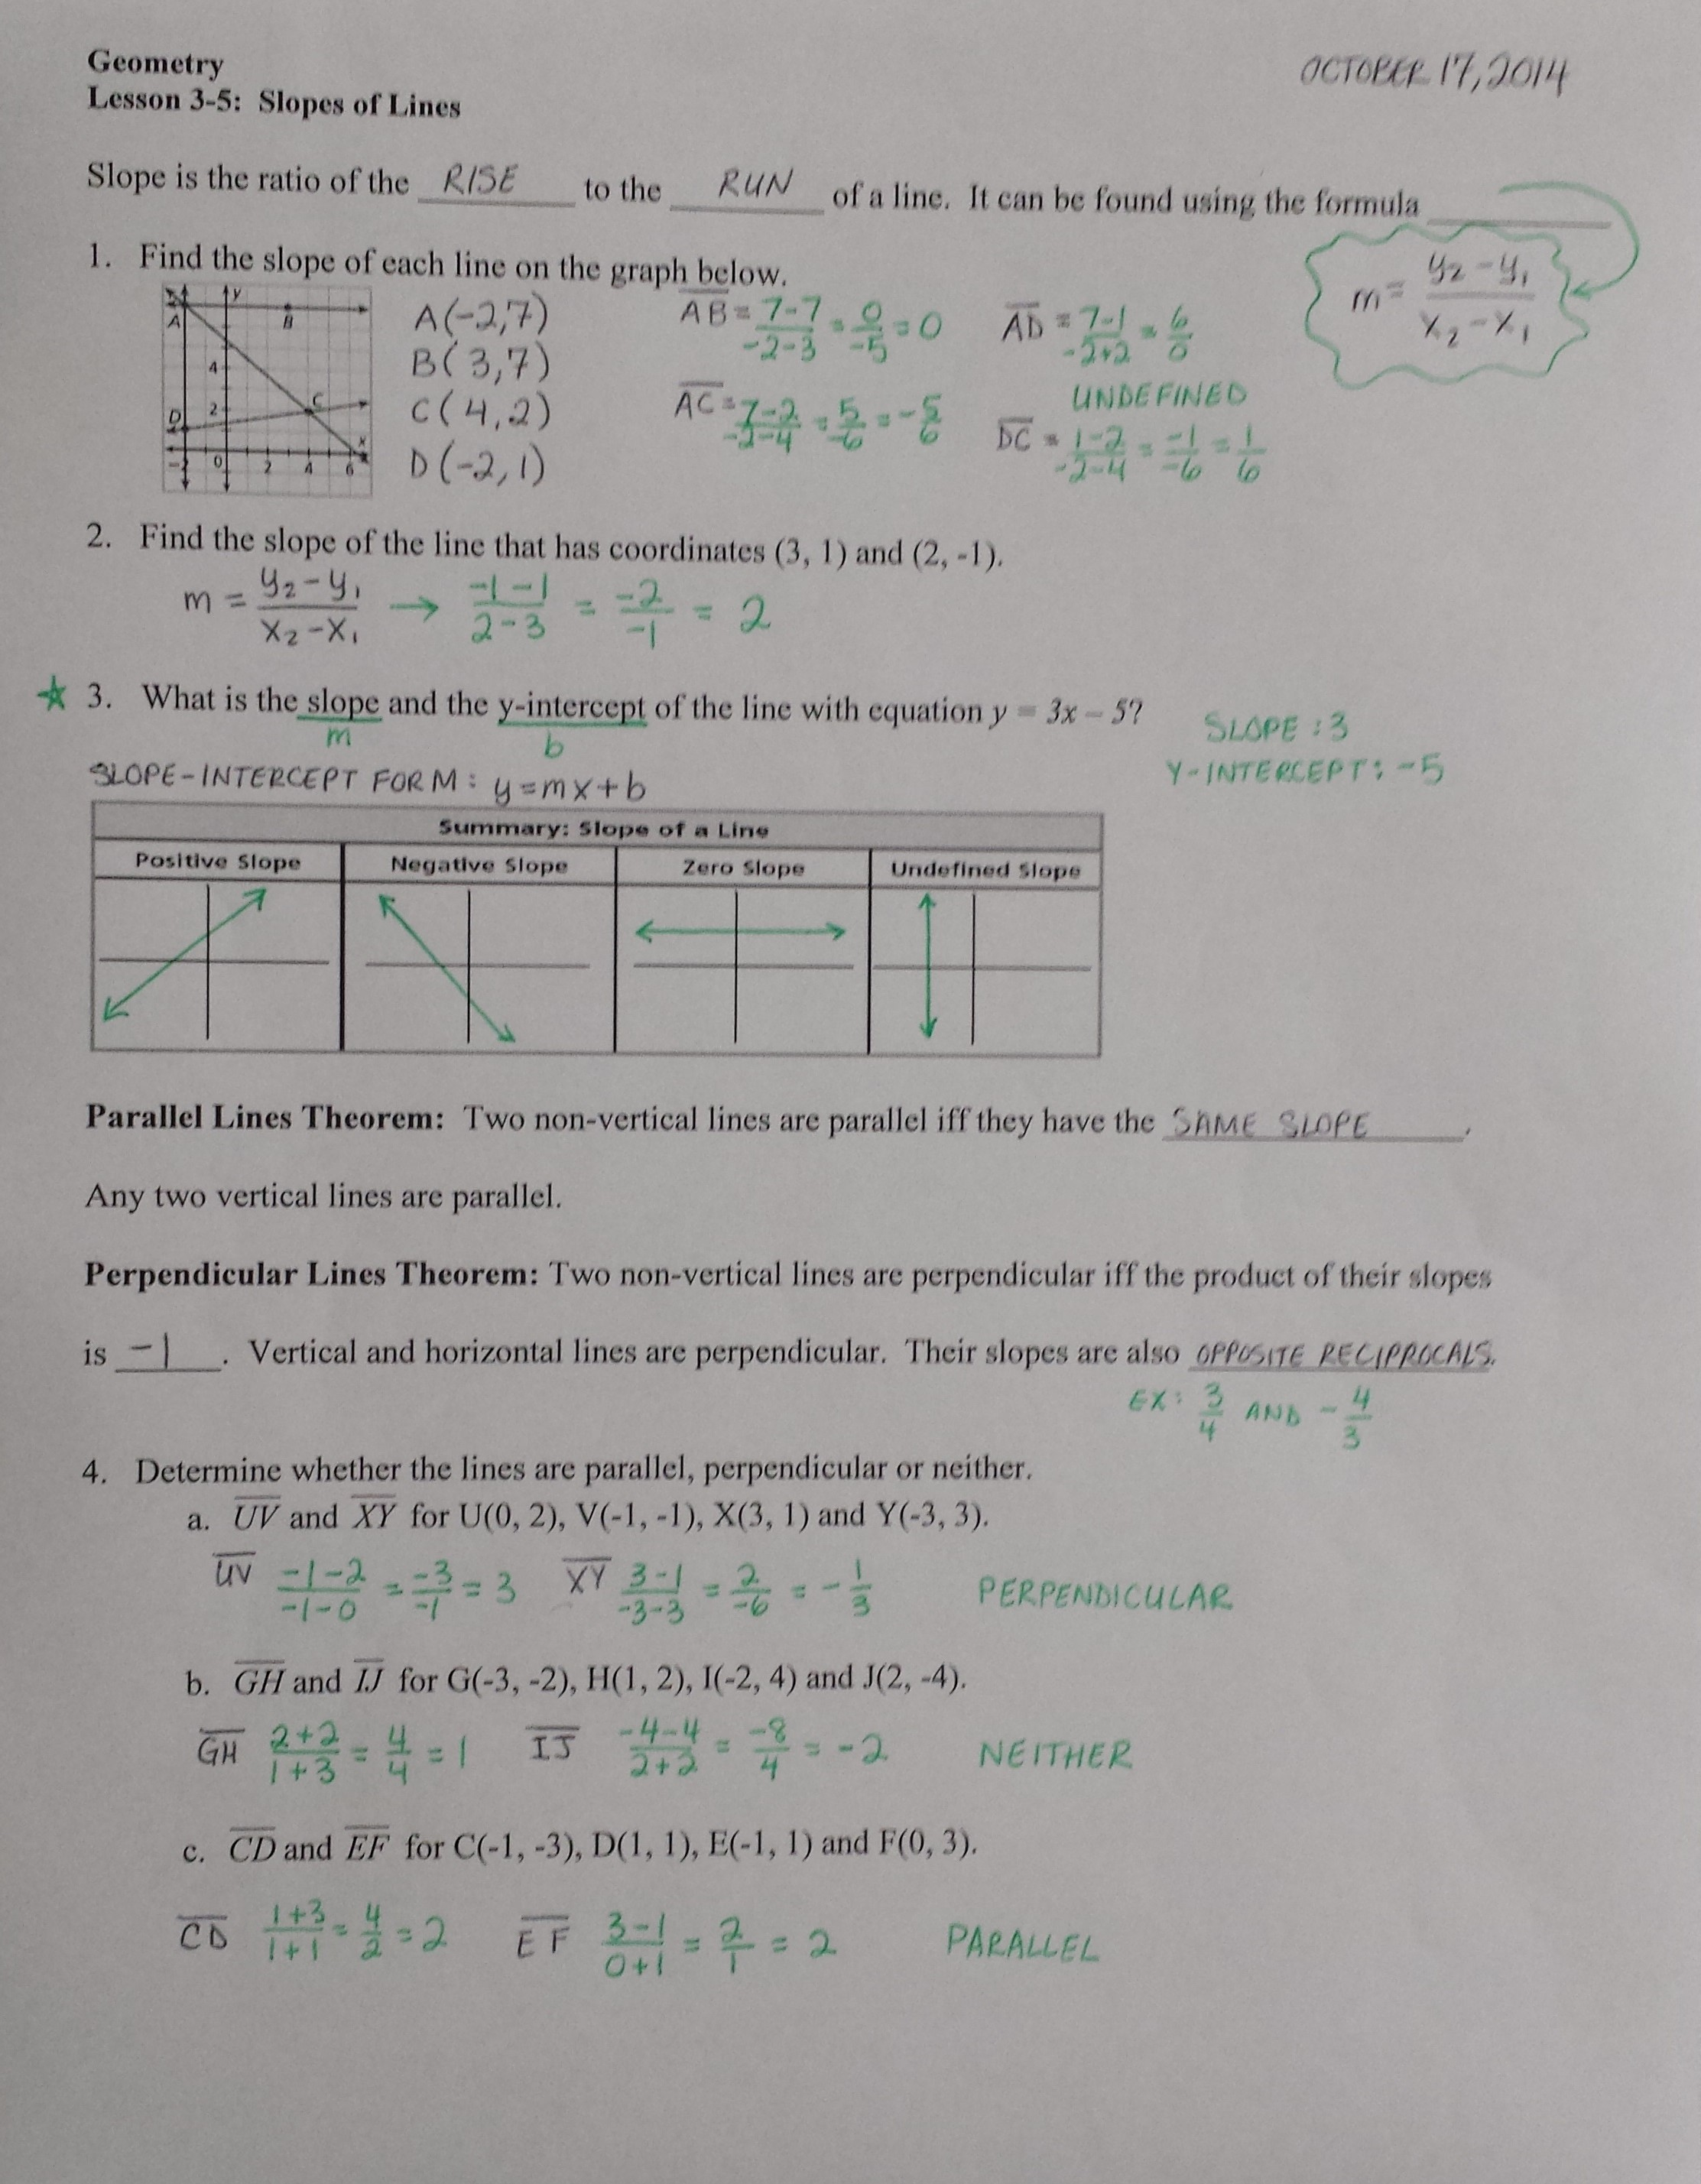 Deductive Logic Worksheet